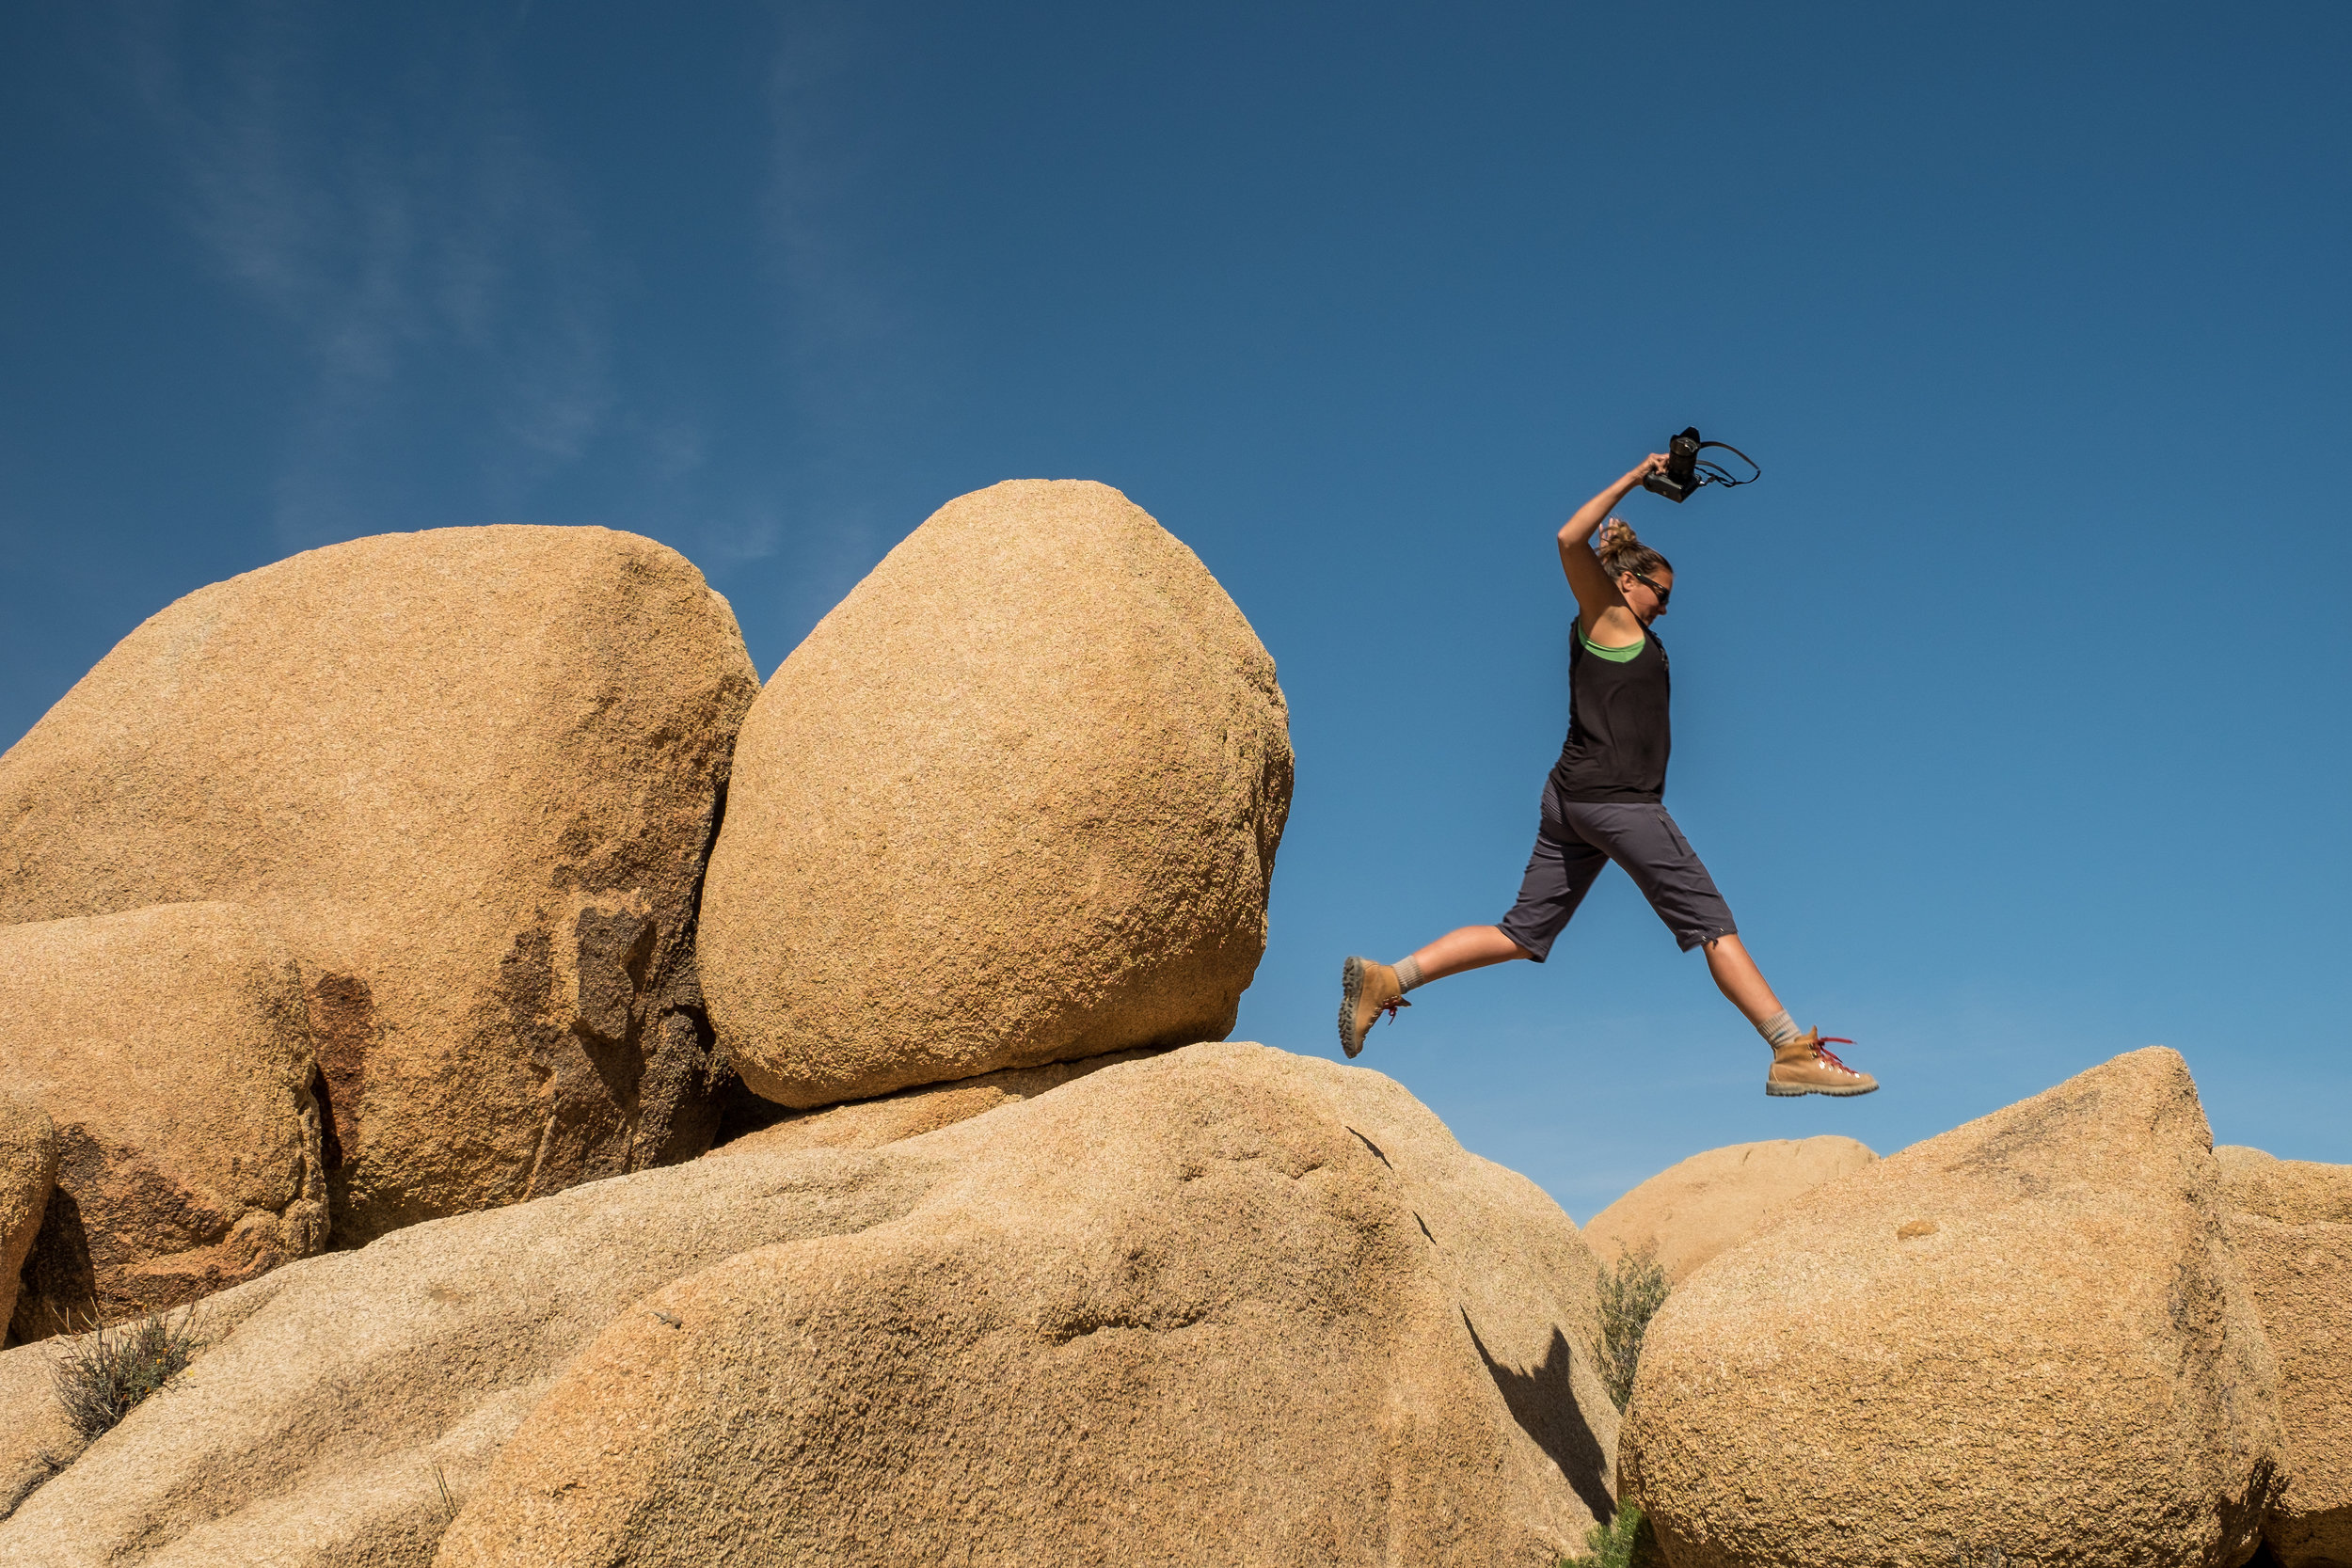 Boulder hopping in Joshua Tree National Park in California